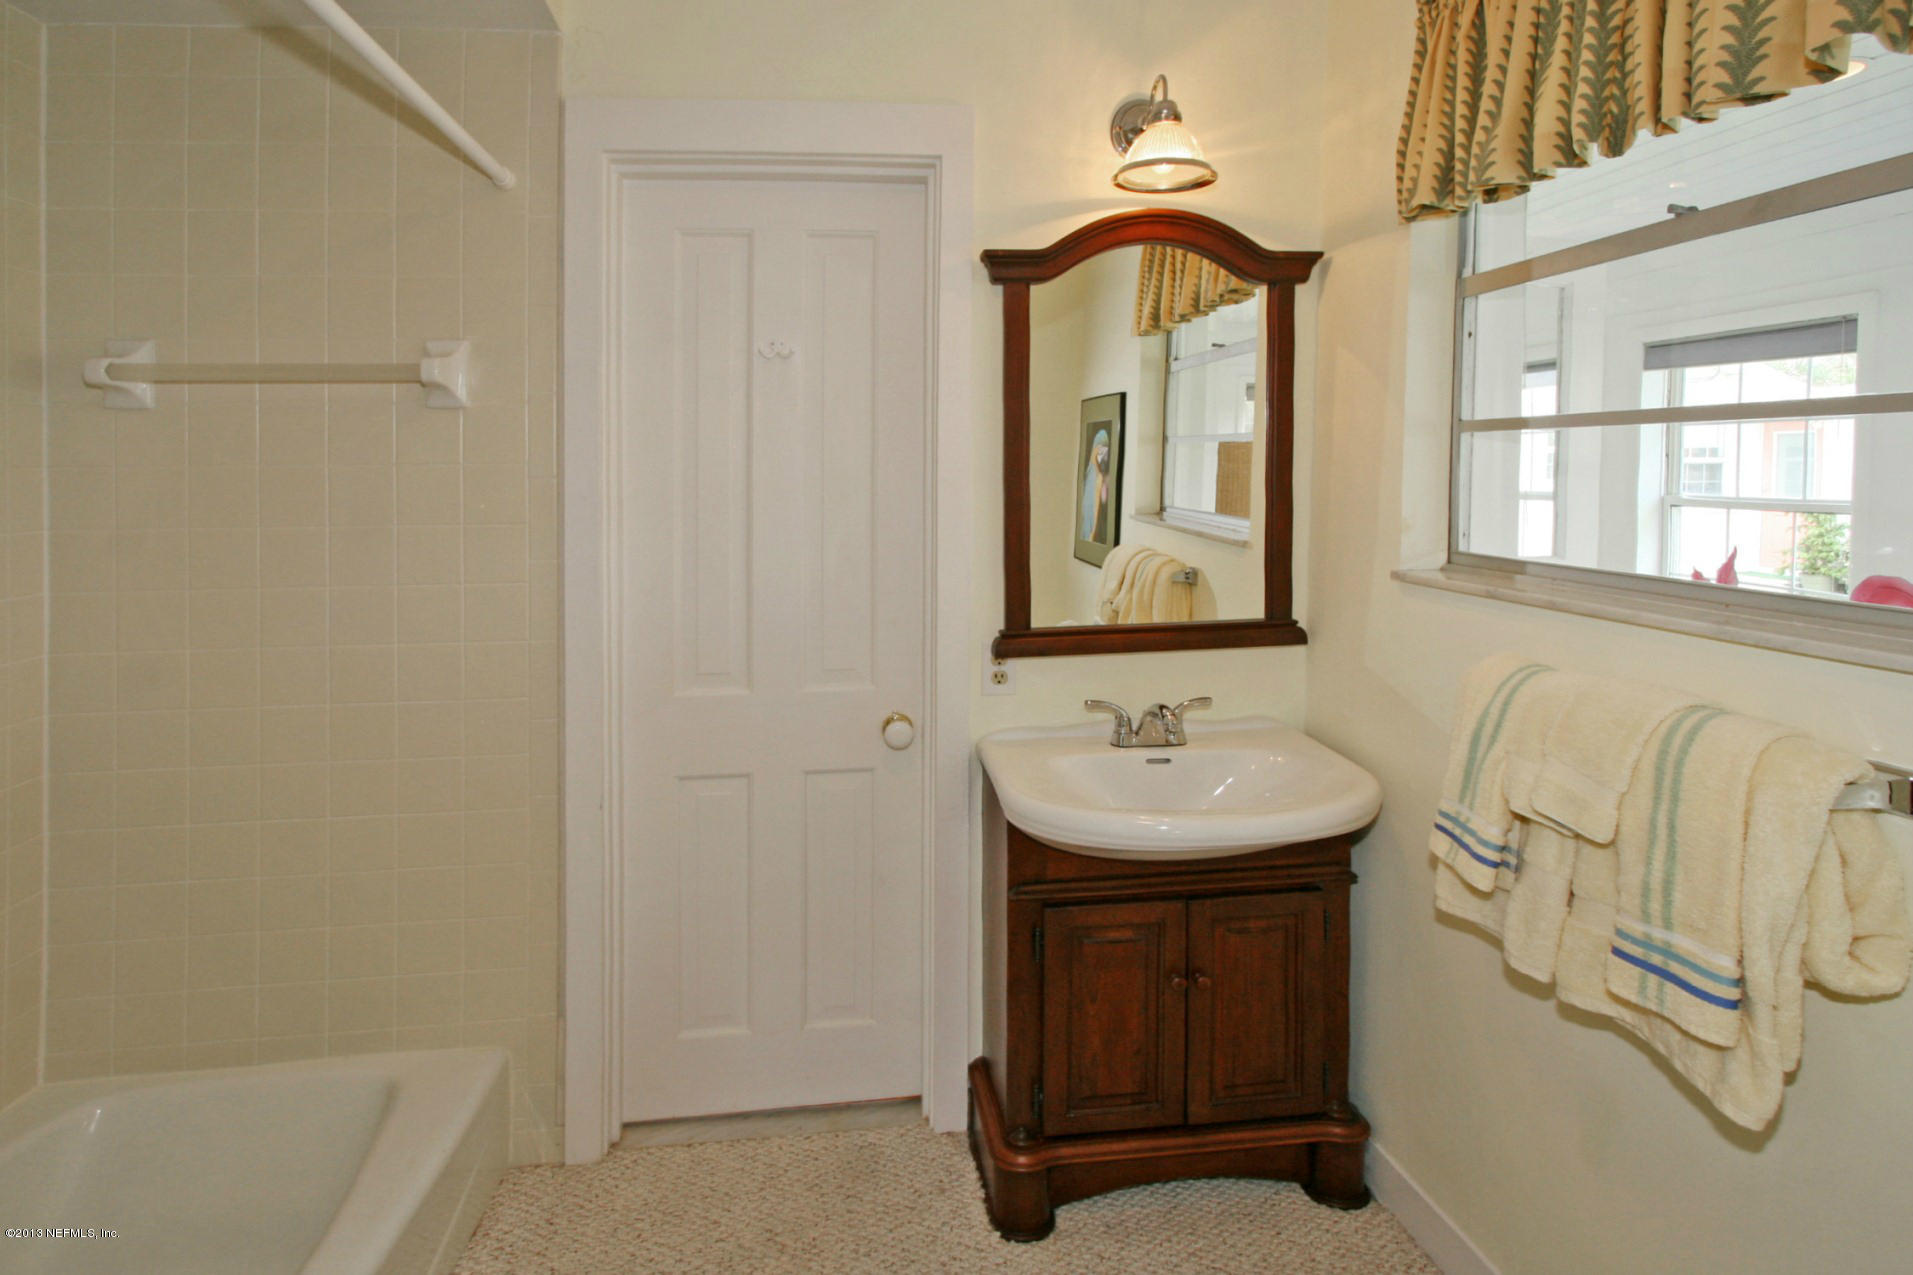 9097 OLD A1A, ST AUGUSTINE, FLORIDA 32080, 4 Bedrooms Bedrooms, ,3 BathroomsBathrooms,Residential - single family,For sale,OLD A1A,978586